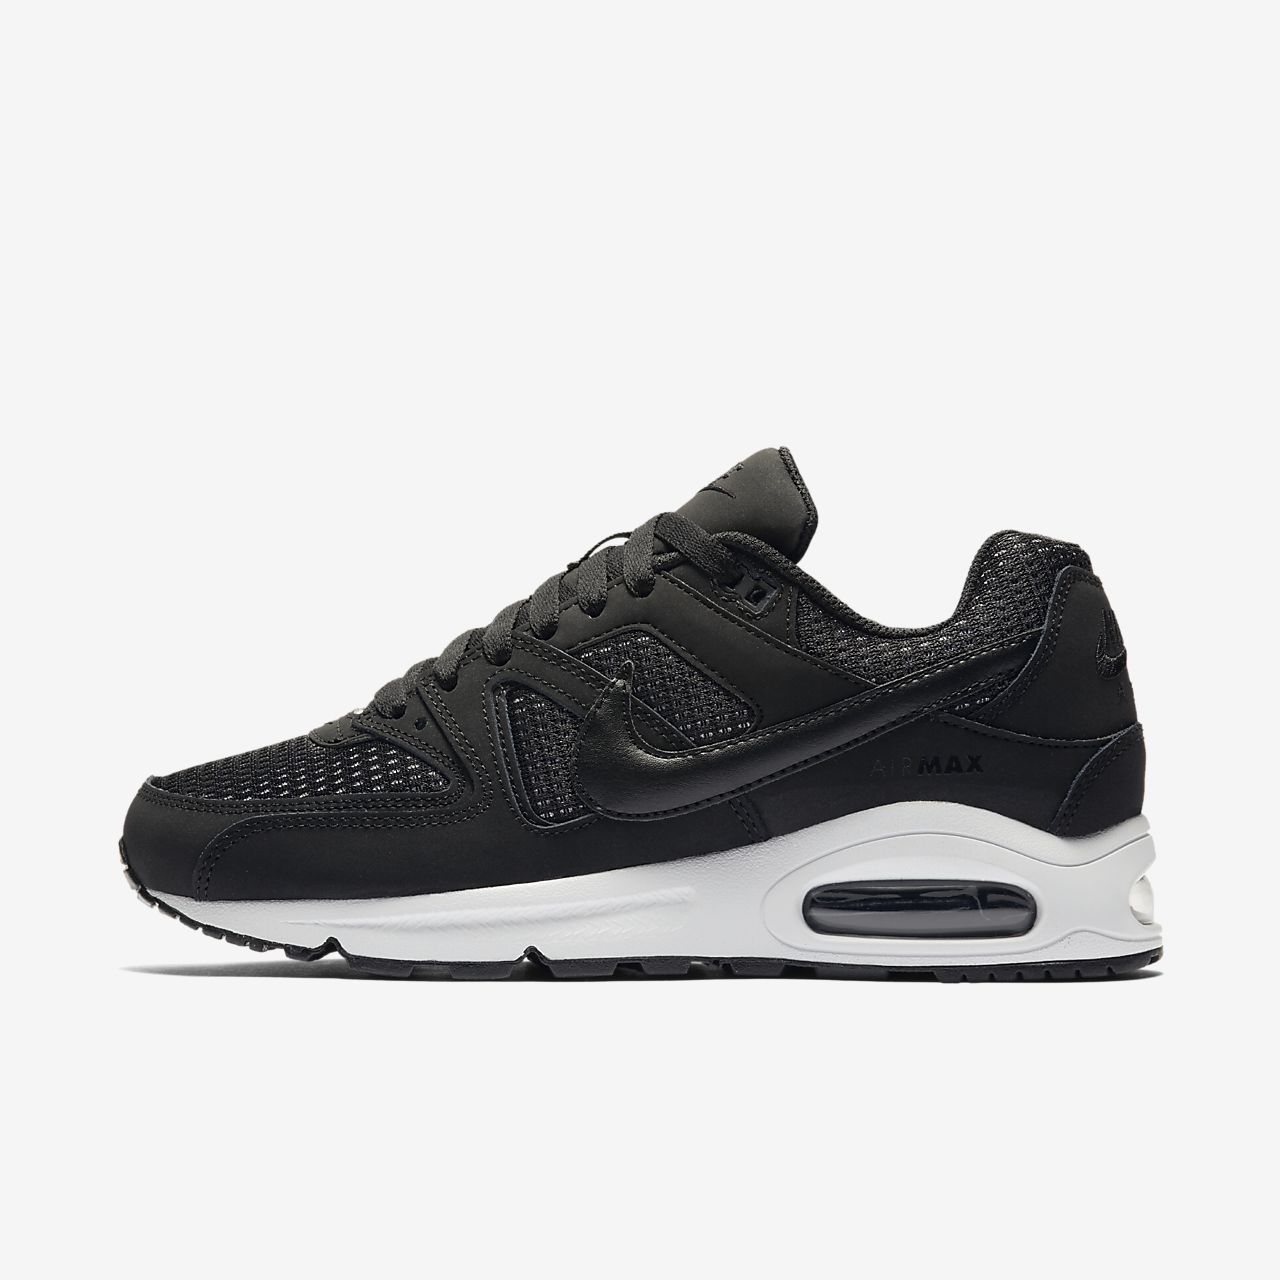 cheap for discount d3b8b 0ea11 ... Buty damskie Nike Air Max Command